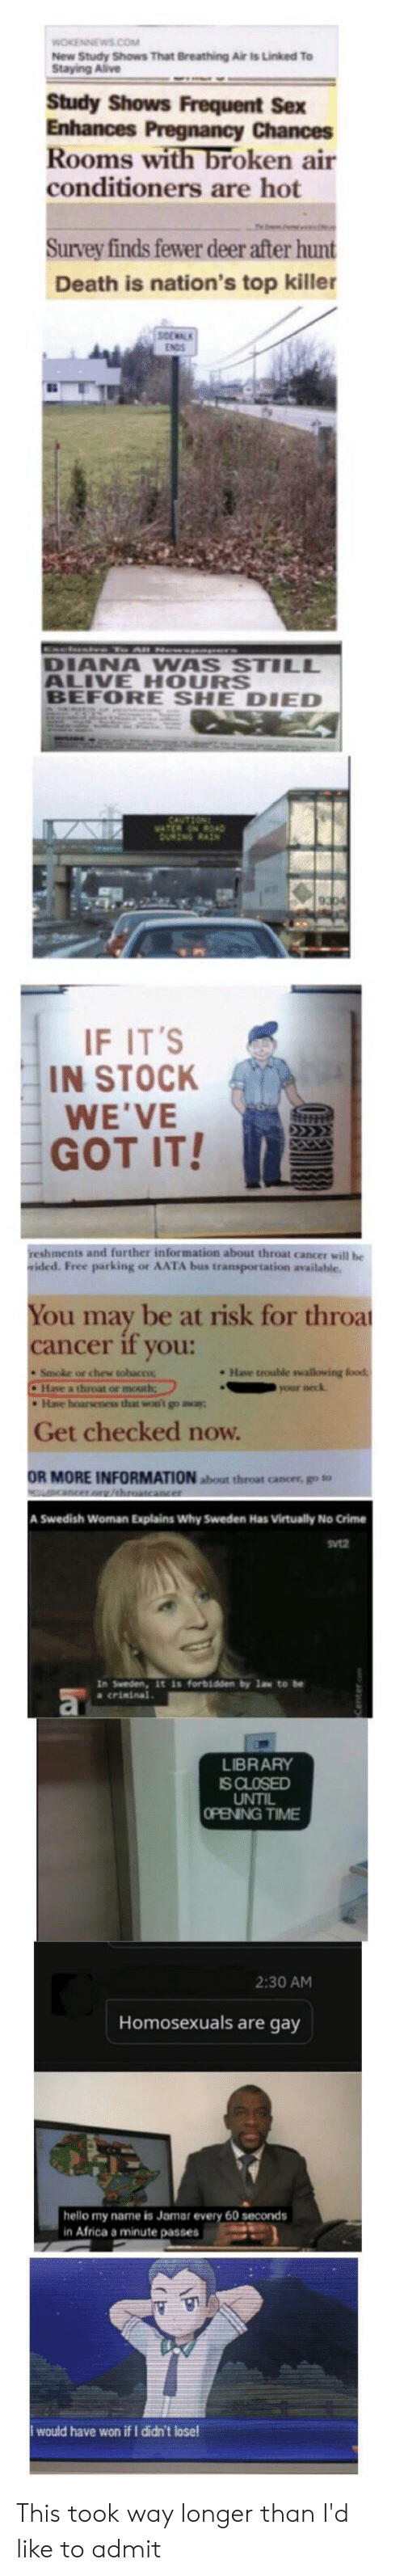 throat cancer: WOKENNEWS.COM  New Study Shows That Breathing Air is Linked To  Staying Alive  Study Shows Frequent Sex  Enhances Pregnancy Chances  Rooms with broken air  conditioners are hot  Survey finds fewer deer after hunt  Death is nation's top killer  xcesiv Te All Newee rs  DIANA WAS STILL  ALIVE HOURS  BEFORE SHE DIED  SAUTION  VATER ONROAD  DukIG RAN  IF IT'S  IN STOCK  WE'VE  GOT IT!  reshments and further information about throat cancer will be  wided. Free parking or AATA bus transportation available.  You may be at risk for throa  cancer if you:  Smoke or chew tobaccoc  Have trouble swallowing food  CHave a throat or mouth;  Have hoarsenes that won' go away  your neck  Get checked now.  OR MORE INFORMATION about throat cancer, go to  acer. throatcancer  A Swedish Woman Explains Why Sweden Has Virtually No Crime  Svt2  In Sweden, it is forbidden by law to be  a crininal.  LIBRARY  IS CLOSED  UNTIL  OPENING TIME  2:30 AM  Homosexuals are gay  hello my name is Jamar every 60 seconds  in Africa a minute passes  would have won if I didn't lose This took way longer than I'd like to admit